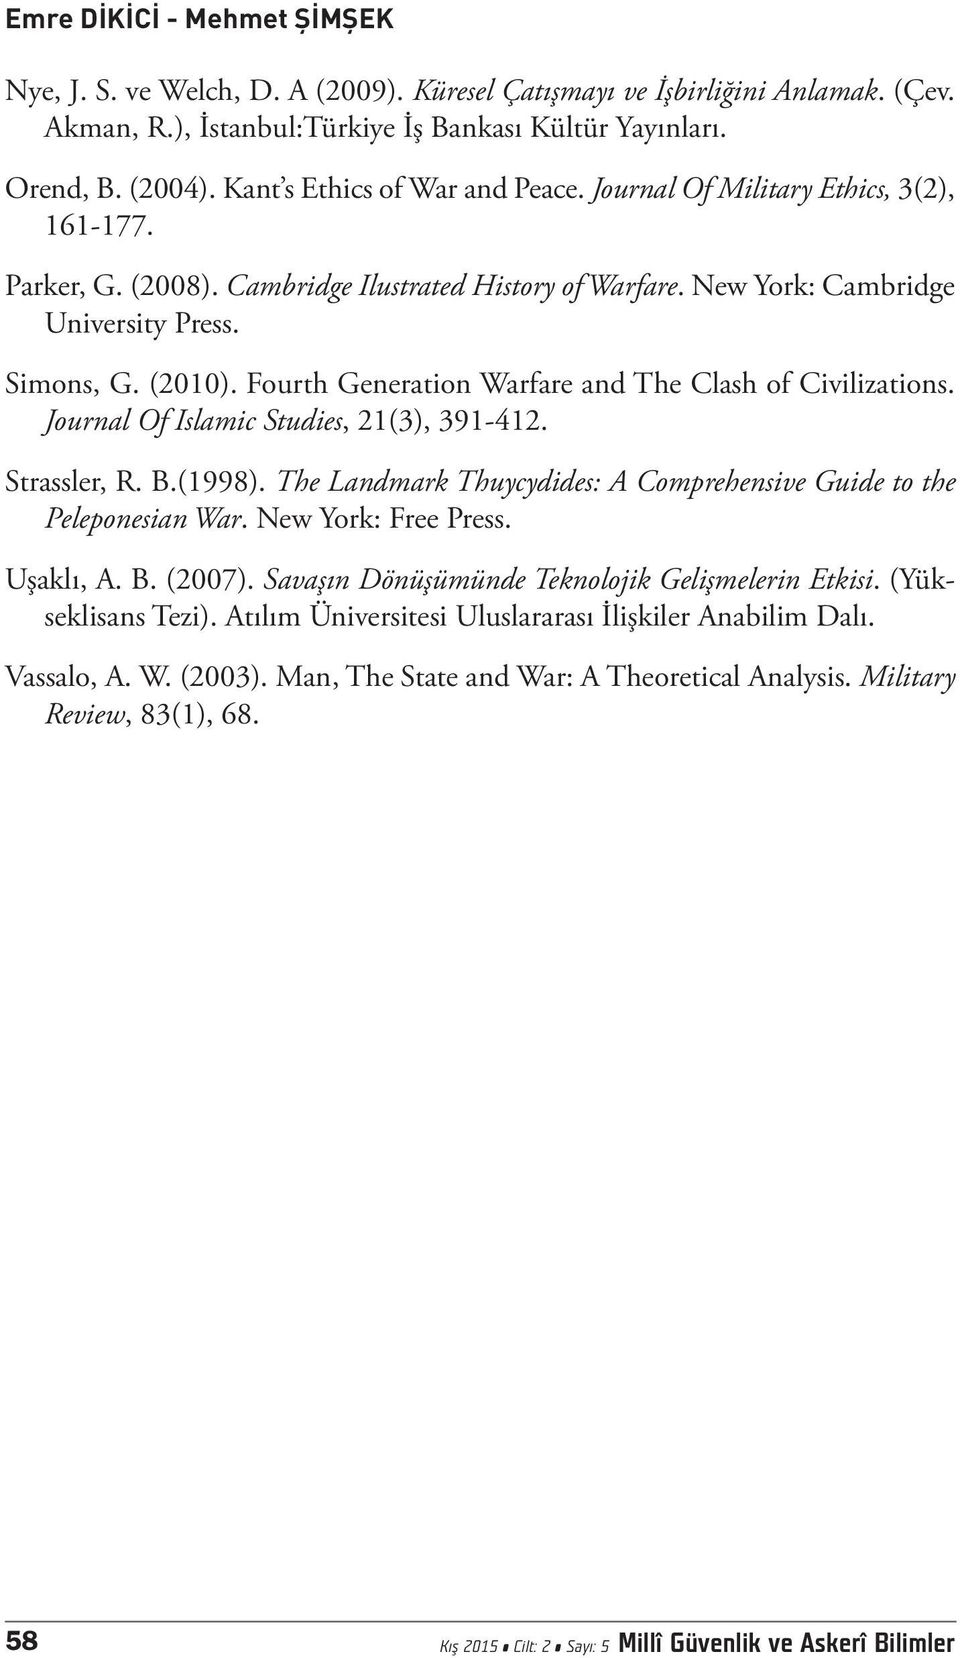 Fourth Generation Warfare and The Clash of Civilizations. Journal Of Islamic Studies, 21(3), 391-412. Strassler, R. B.(1998). The Landmark Thuycydides: A Comprehensive Guide to the Peleponesian War.